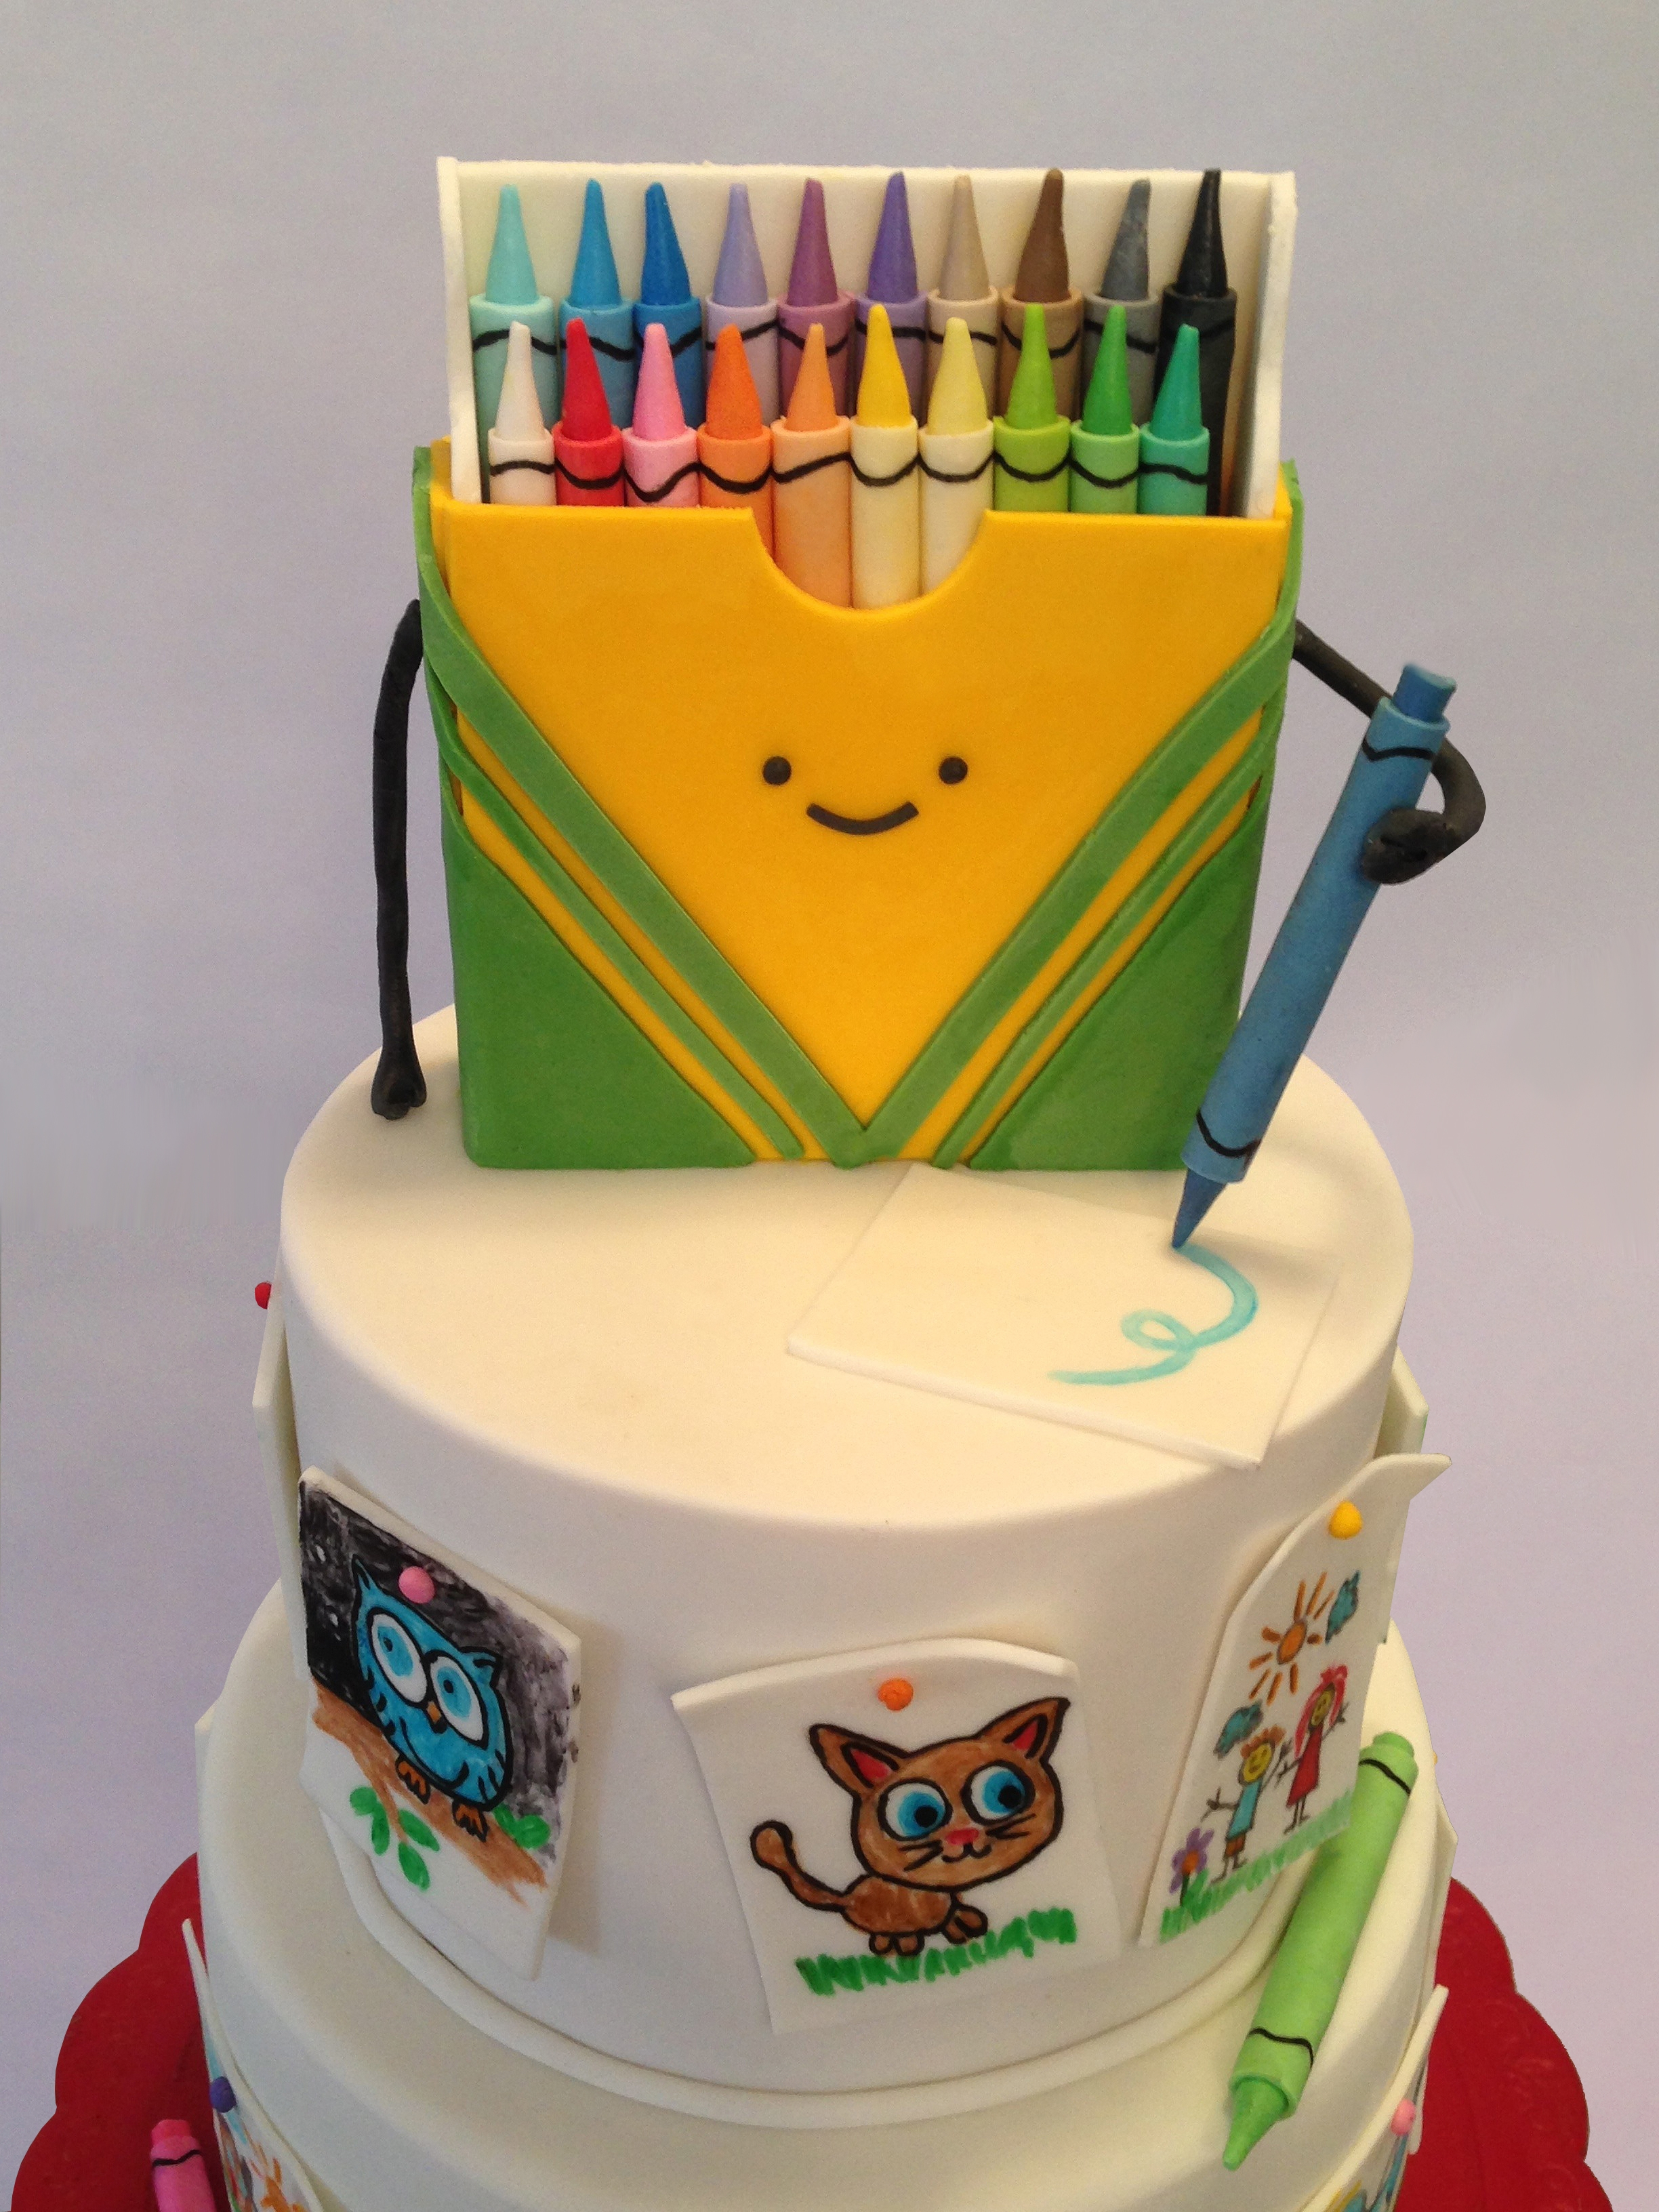 Crayon birthday cake